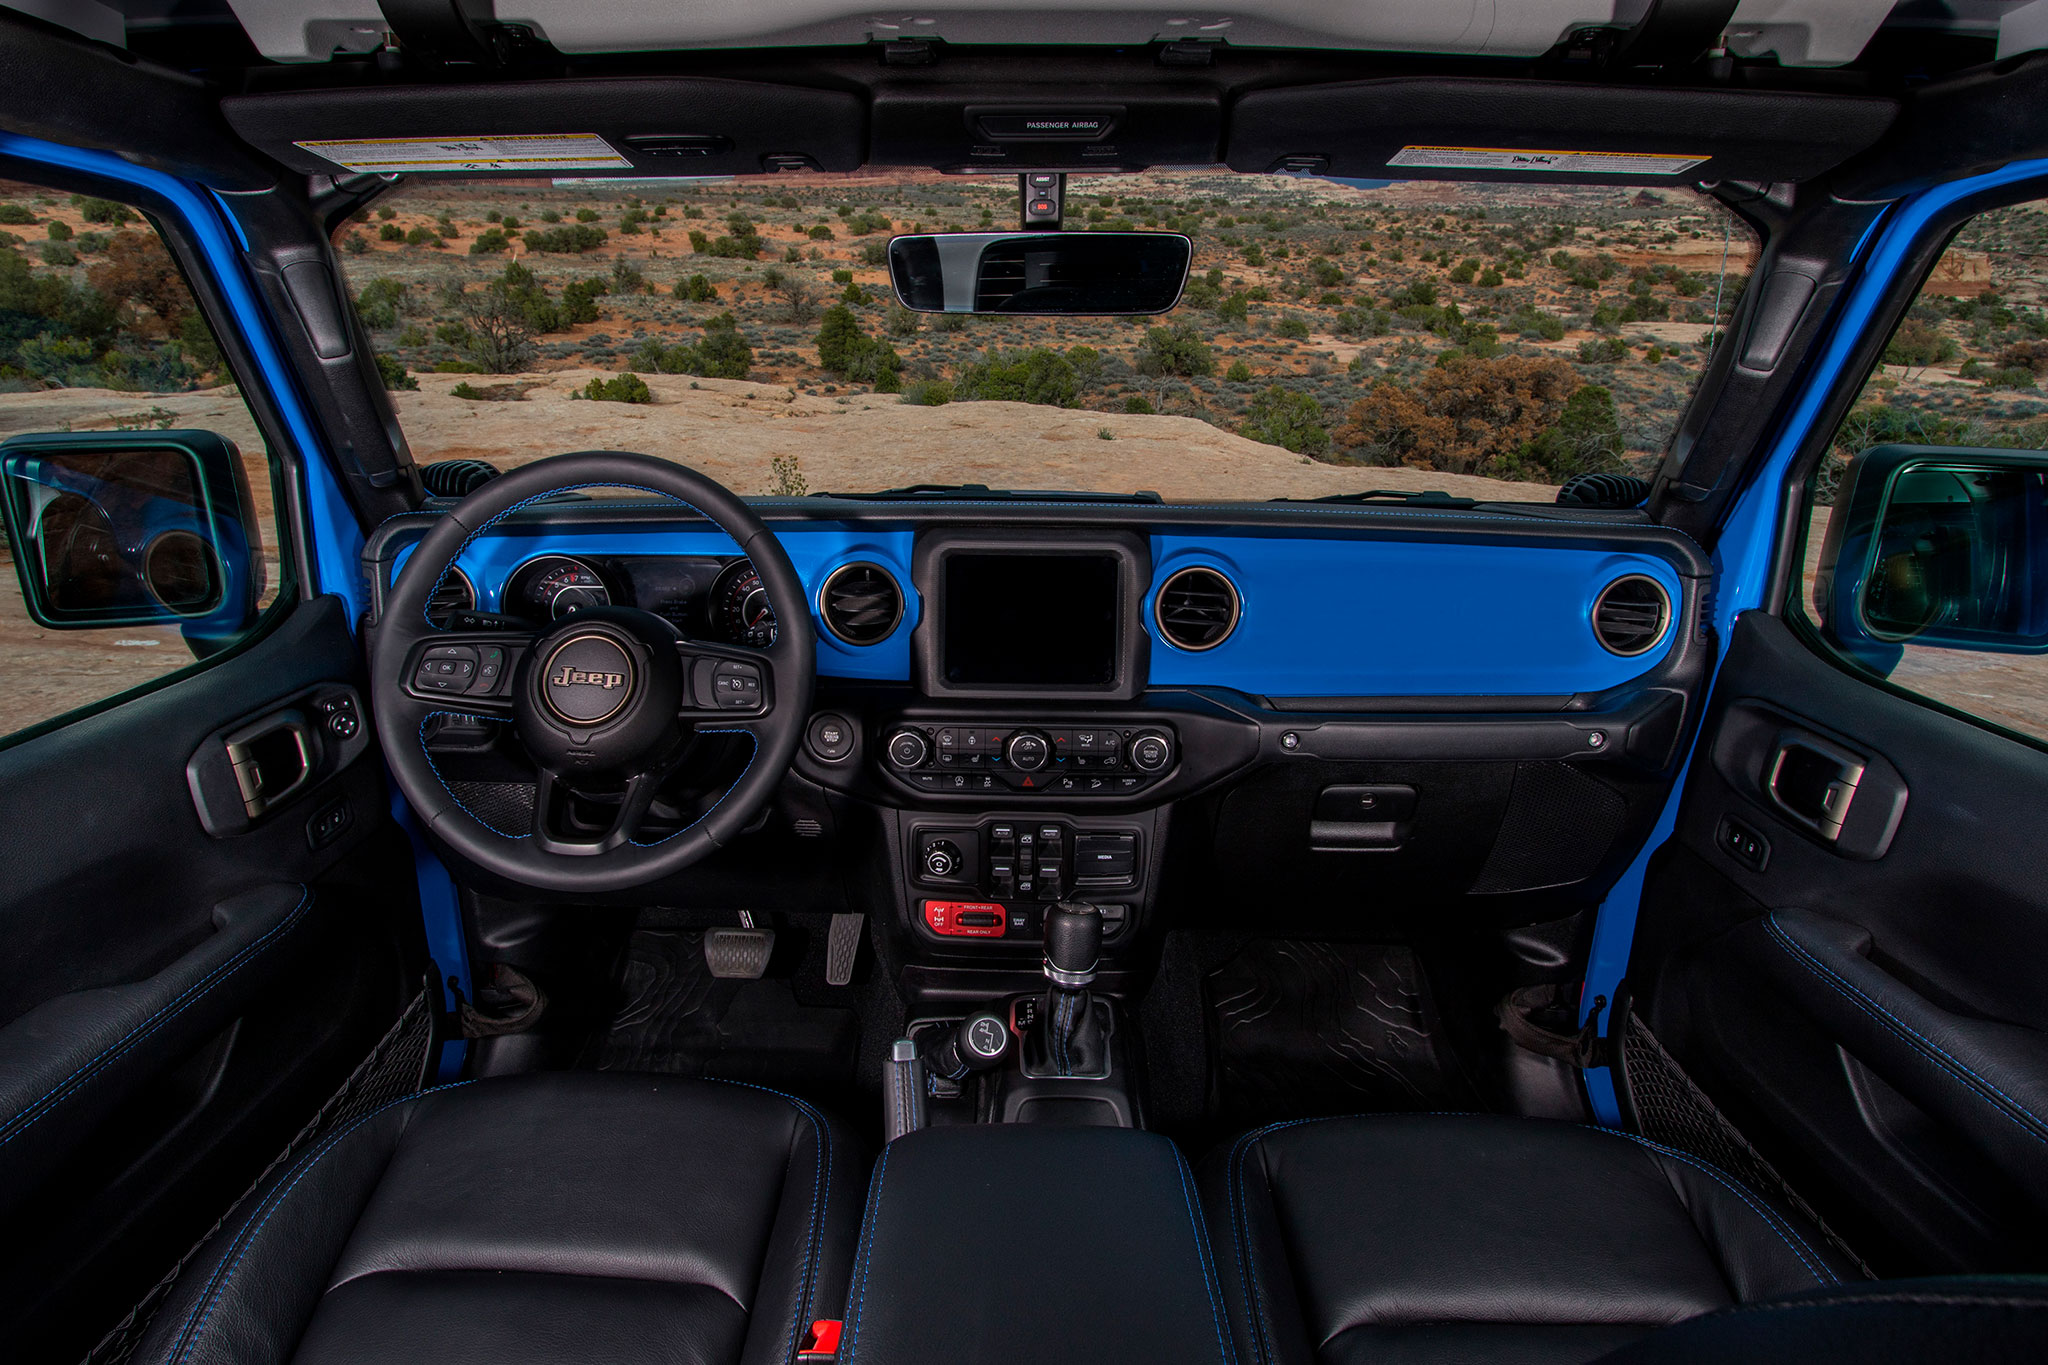 2019 Jeep J6 cuir noir aux surpiqûres bleues assorties au Brilliant Blue - Moab Easter Jeep Safari.